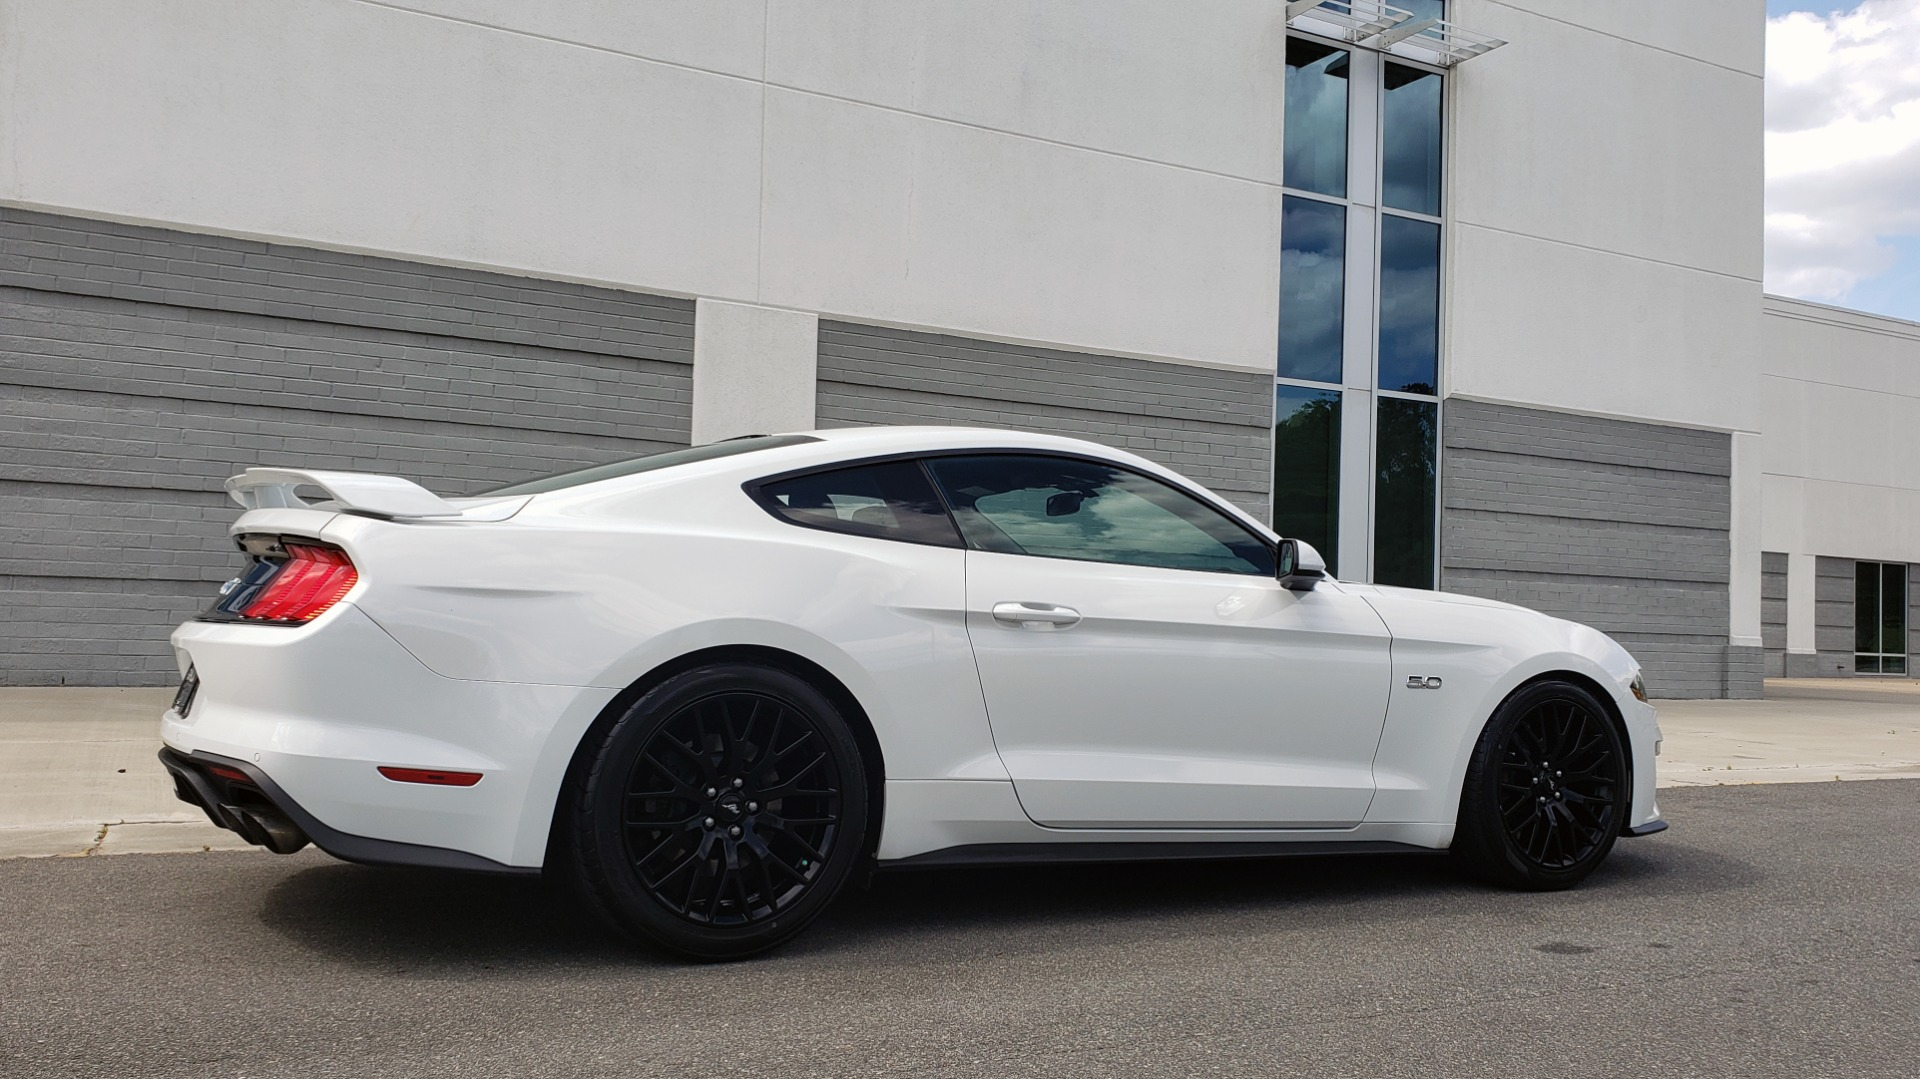 Used 2018 Ford MUSTANG GT COUPE / 5.0L V8 / AUTO / PERF PKG / REARVIEW / 19IN WHLS for sale Sold at Formula Imports in Charlotte NC 28227 10